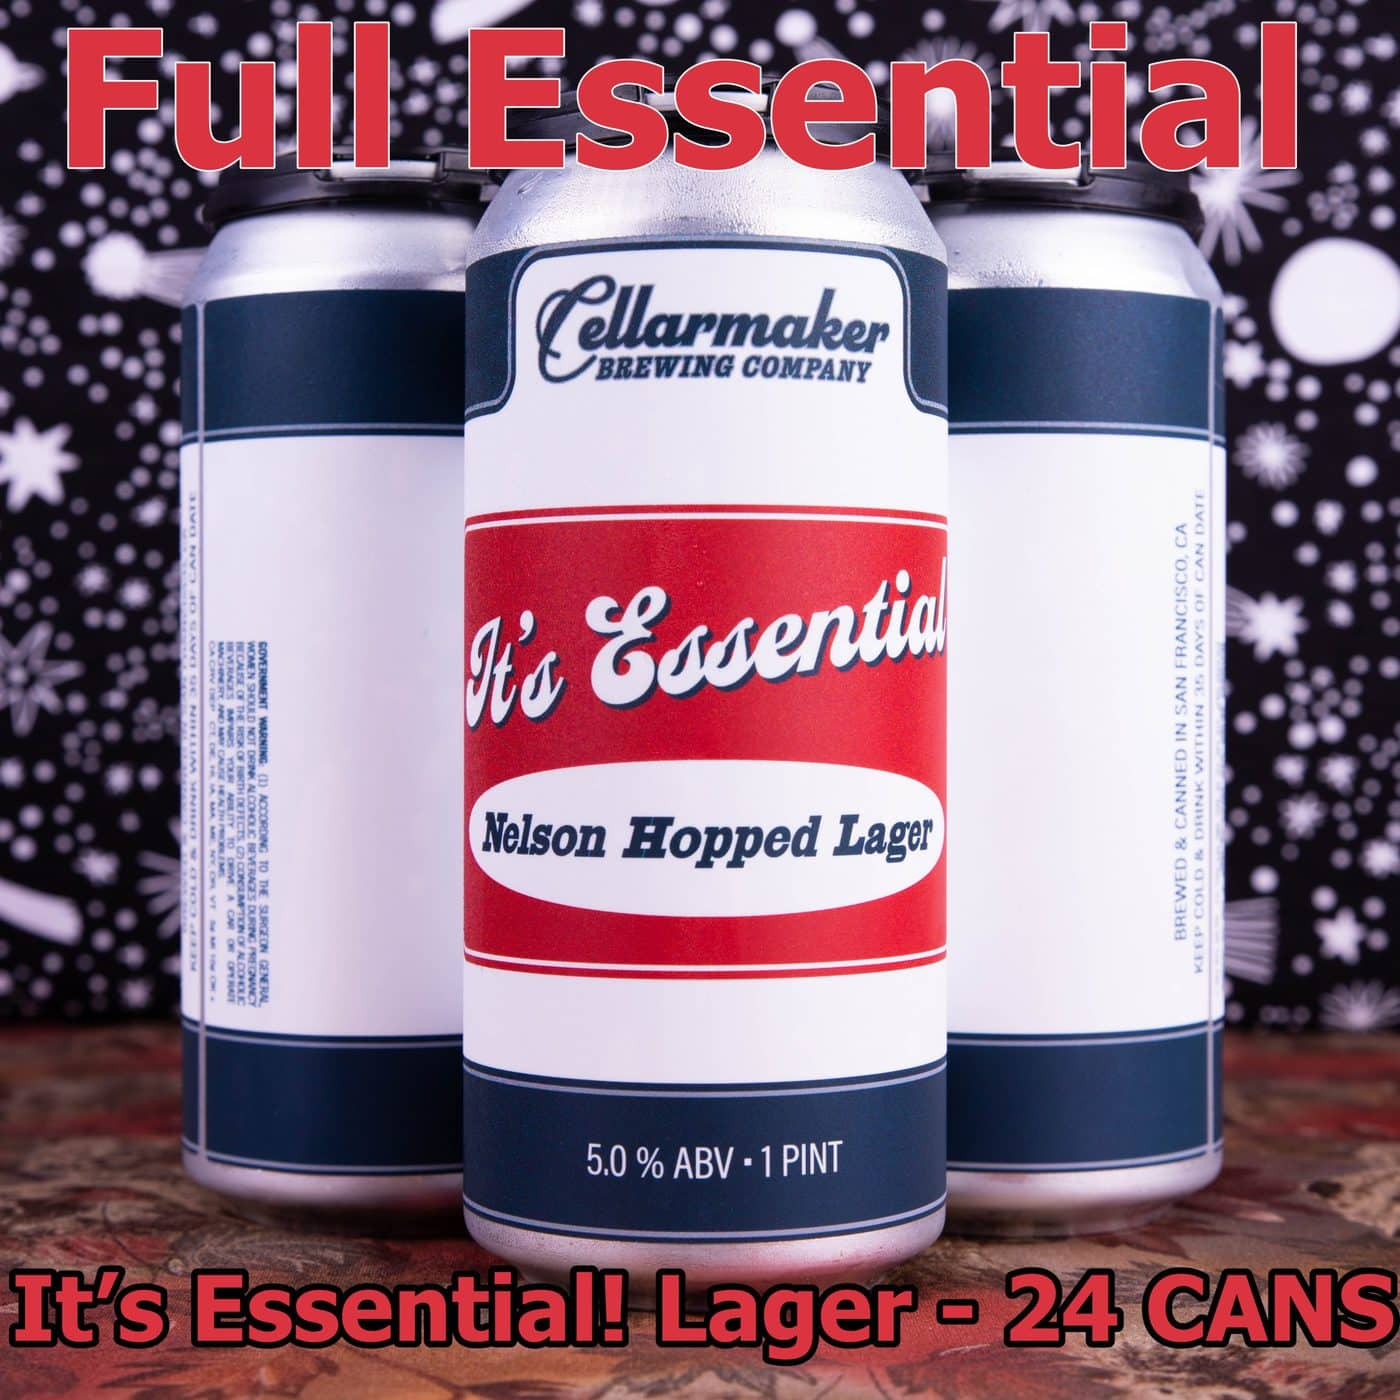 FULL CASE 24 CANS It's Essential Nelson Hopped Lager ~ Shipping Out For Next Day Delivery On Tuesday 1/19*